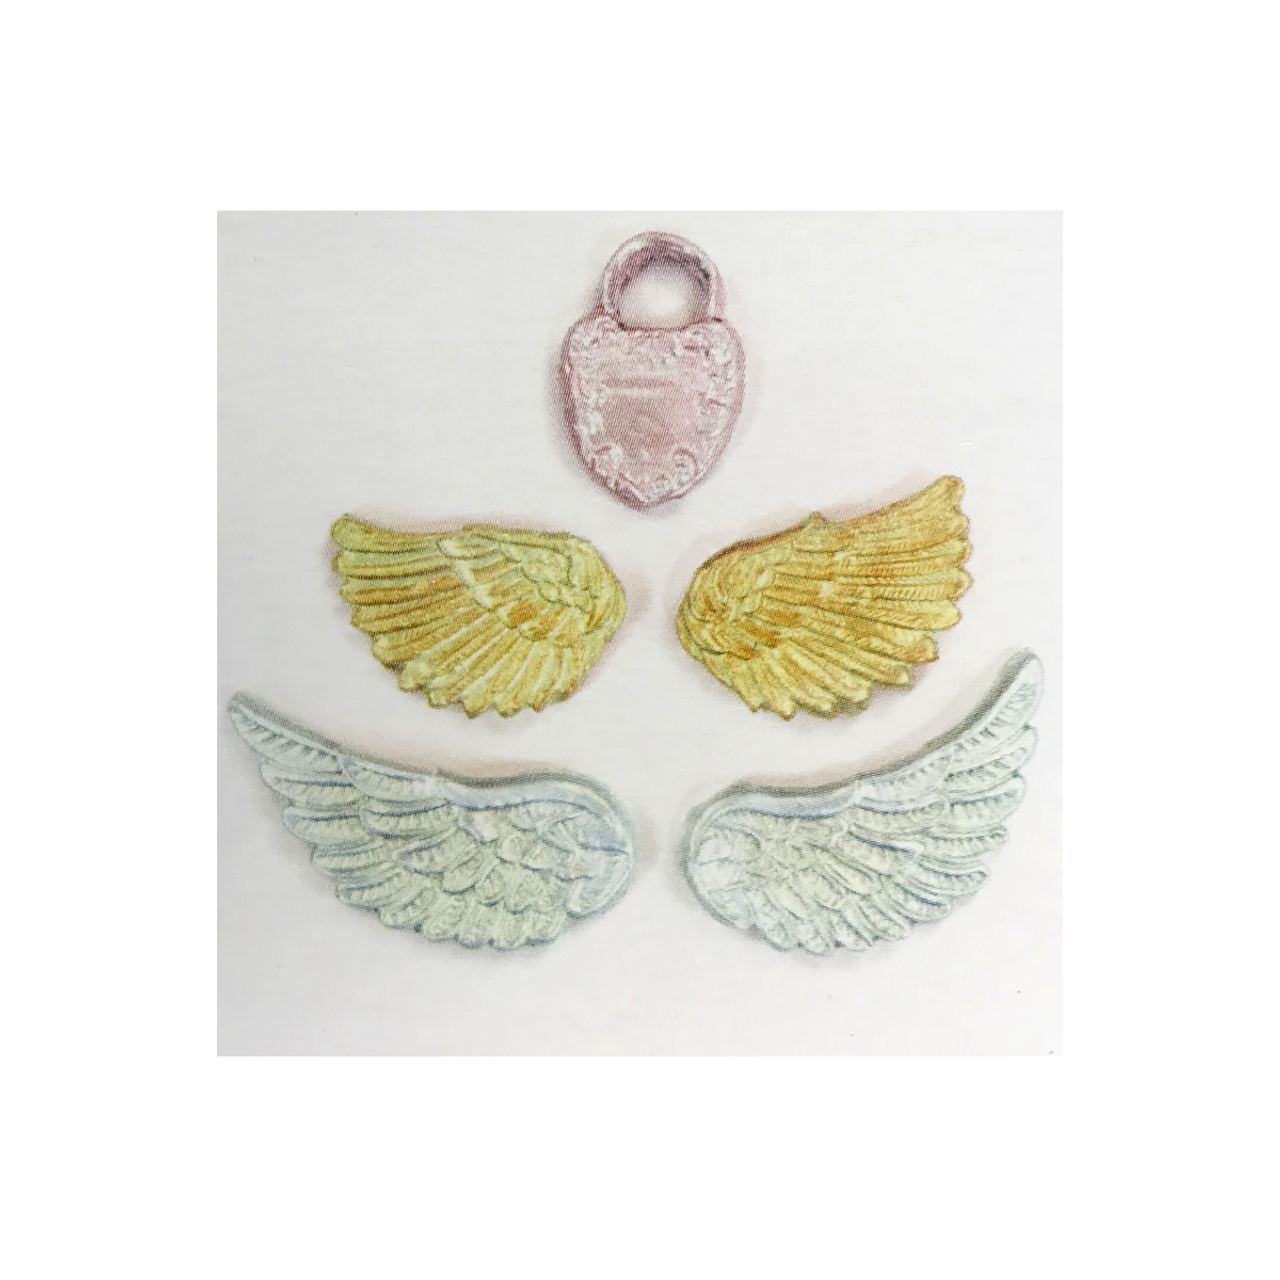 Example items moulded with Wings mould